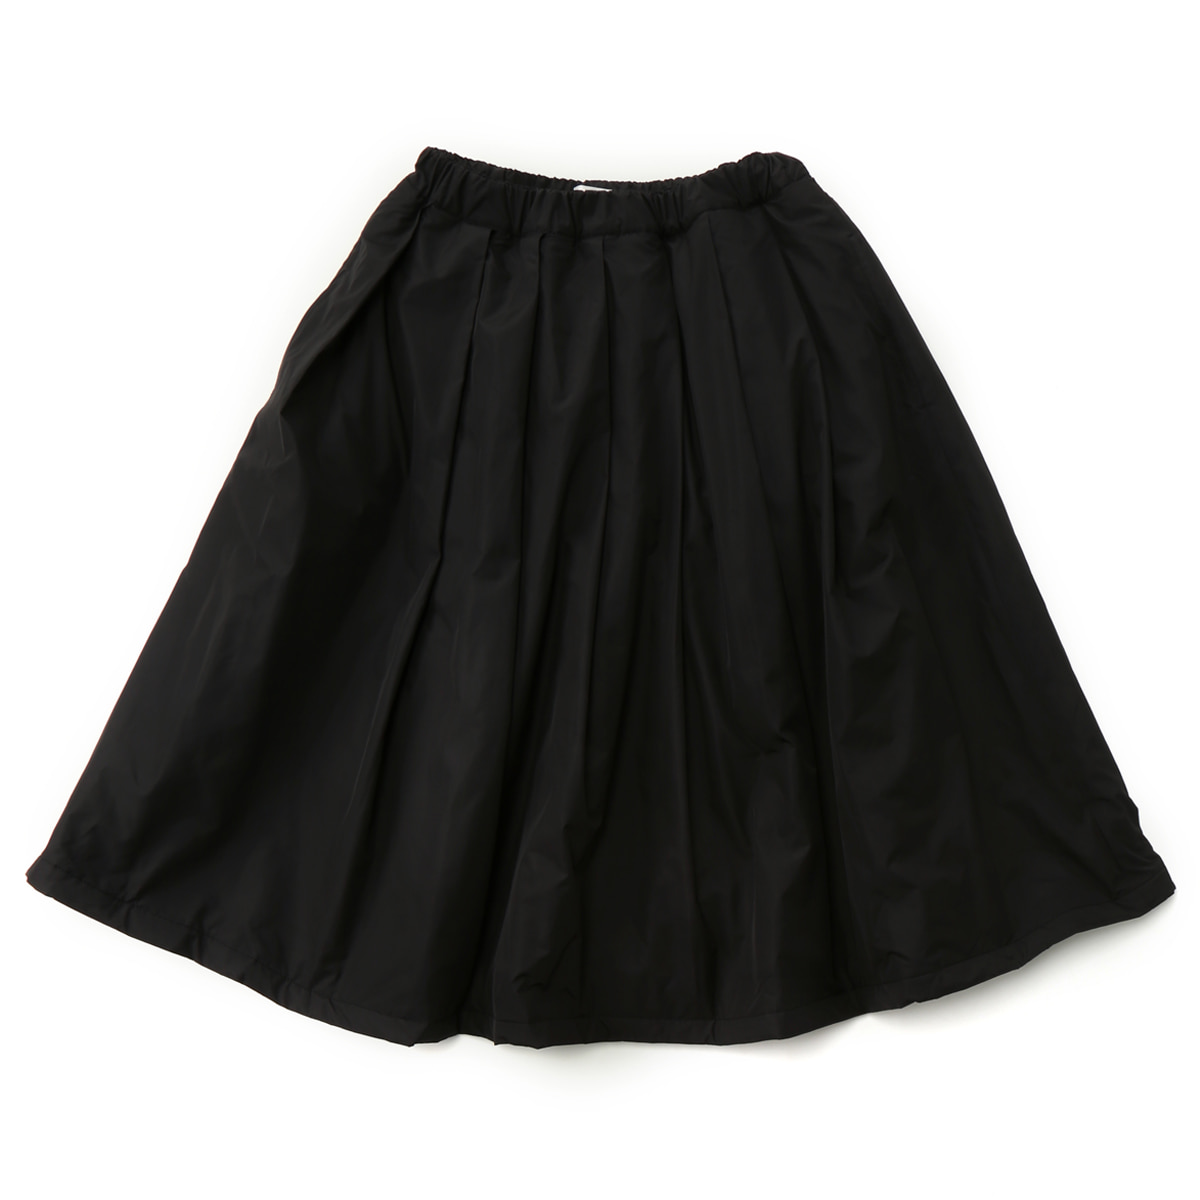 [MUSED] LAYLA A-LINE SKIRT 'BLACK QUILTING'